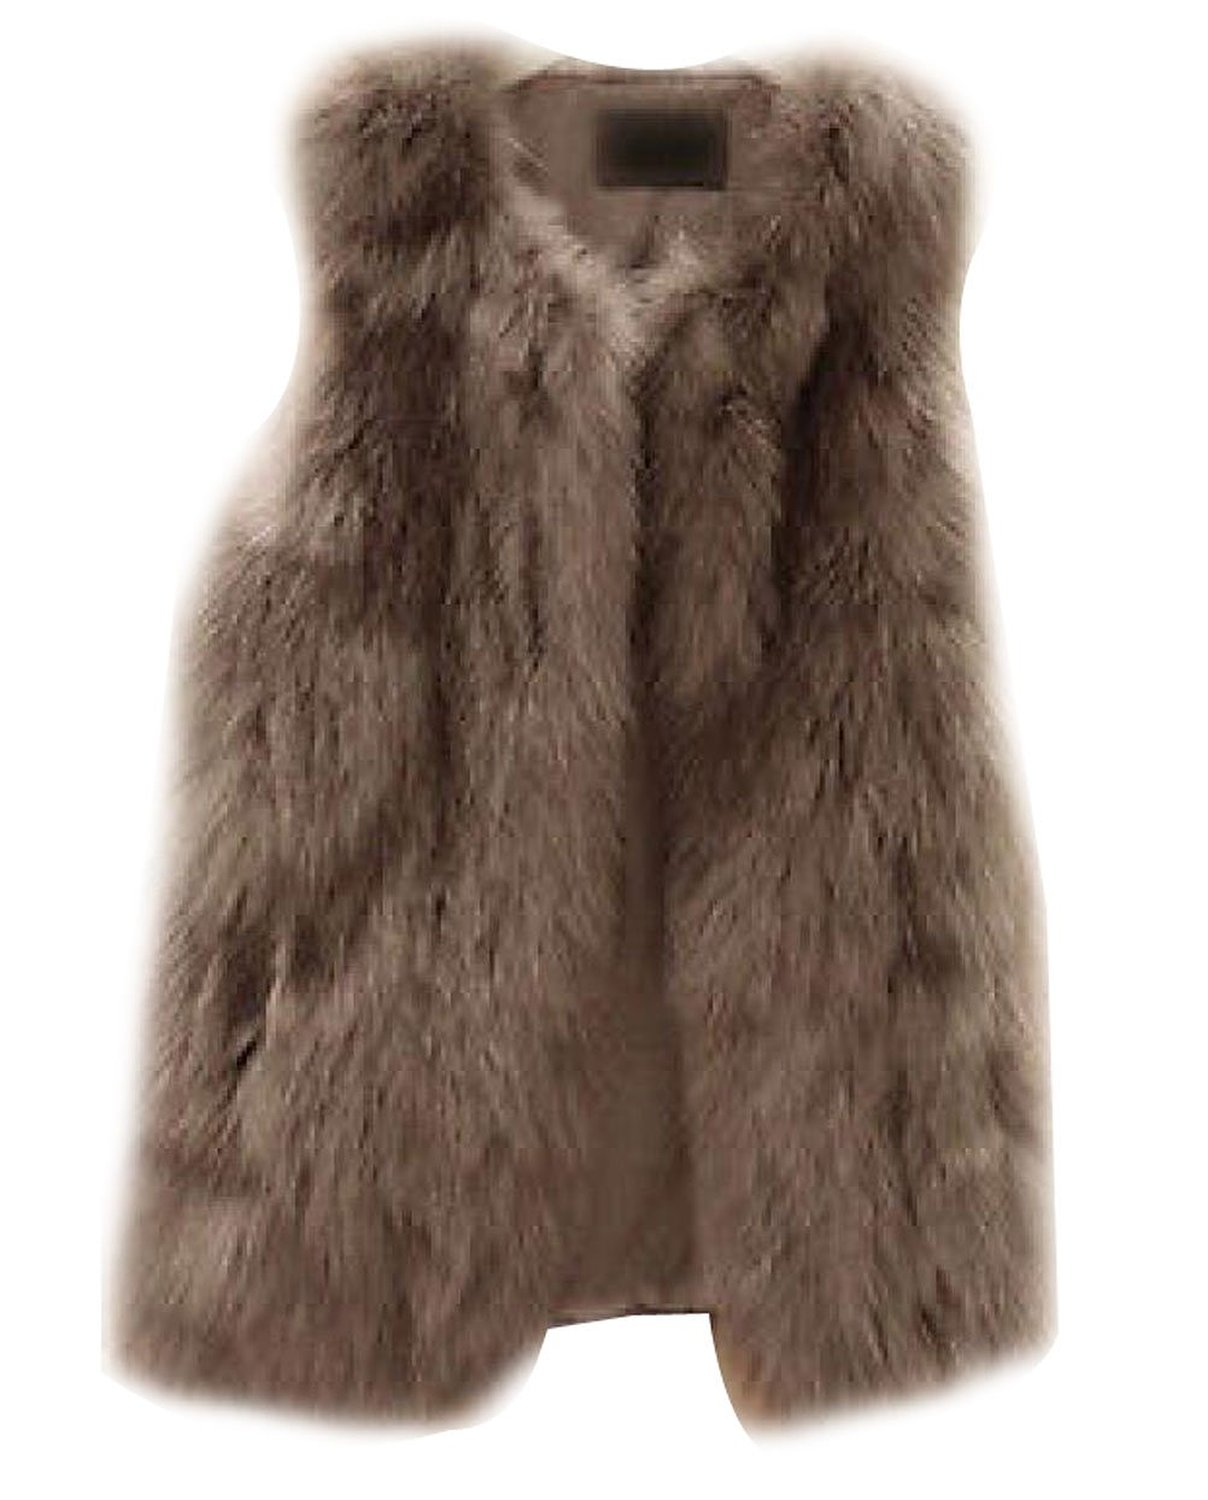 Ideal4dress women faux fur shaggy vest gilet sleeveless coat outerwear waistcoat at amazon women's clothing store: